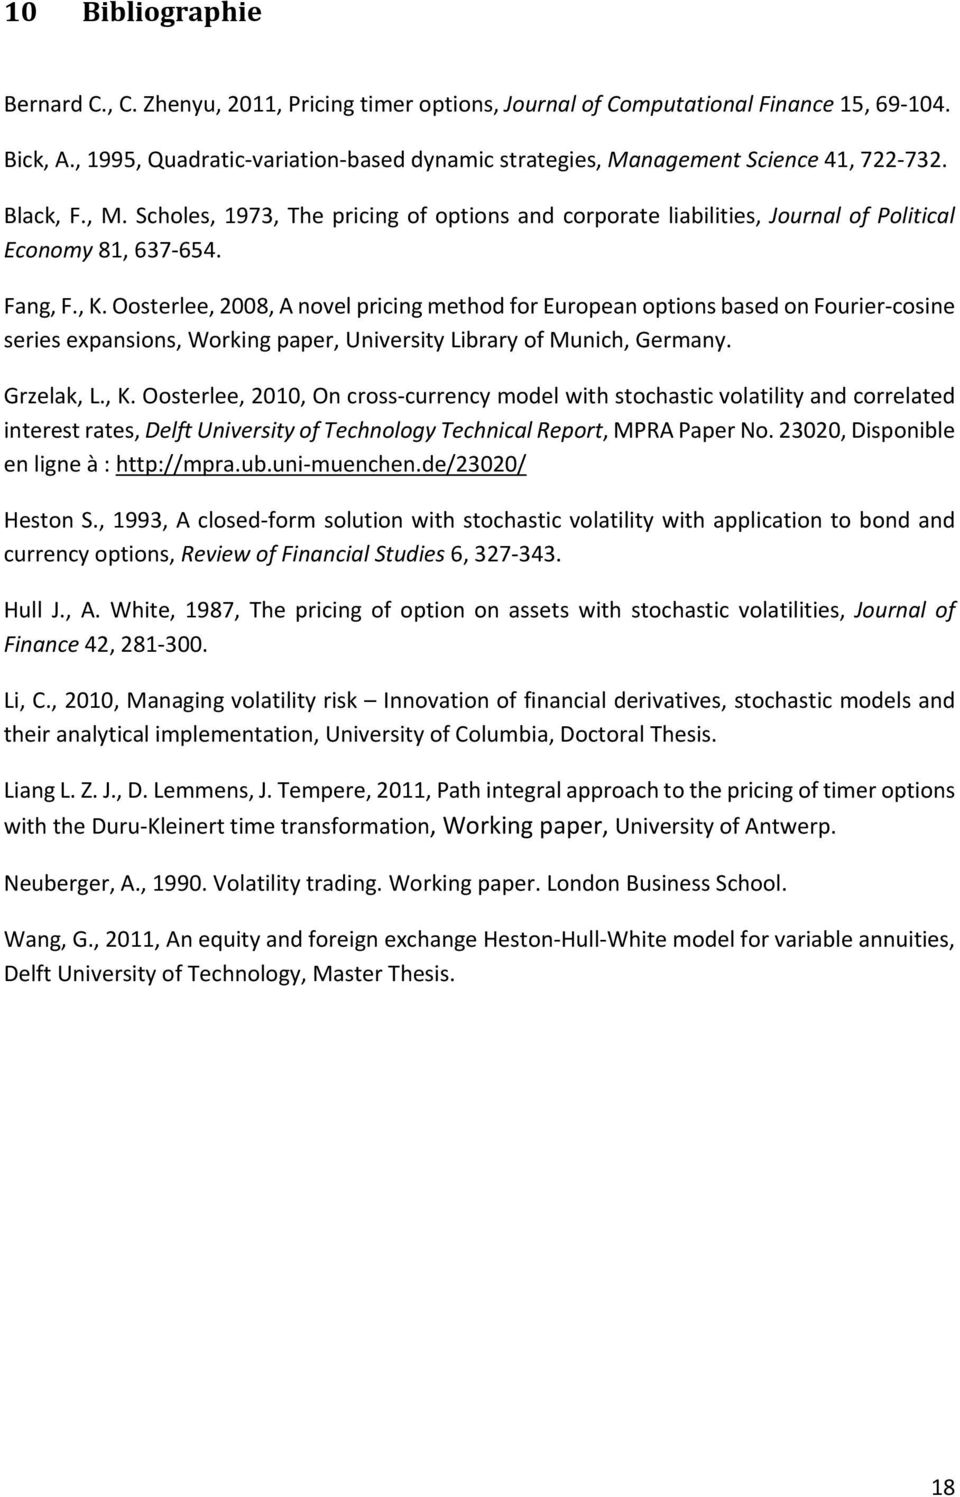 Fang, F., K. Oosterlee, 2008, A novel pricing method for European options based on Fourier cosine series expansions, Working paper, University Library of Munich, Germany. Grzelak, L., K. Oosterlee, 2010, On cross currency model with stochastic volatility and correlated interest rates, Delft University of Technology Technical Report, MPRA Paper No.